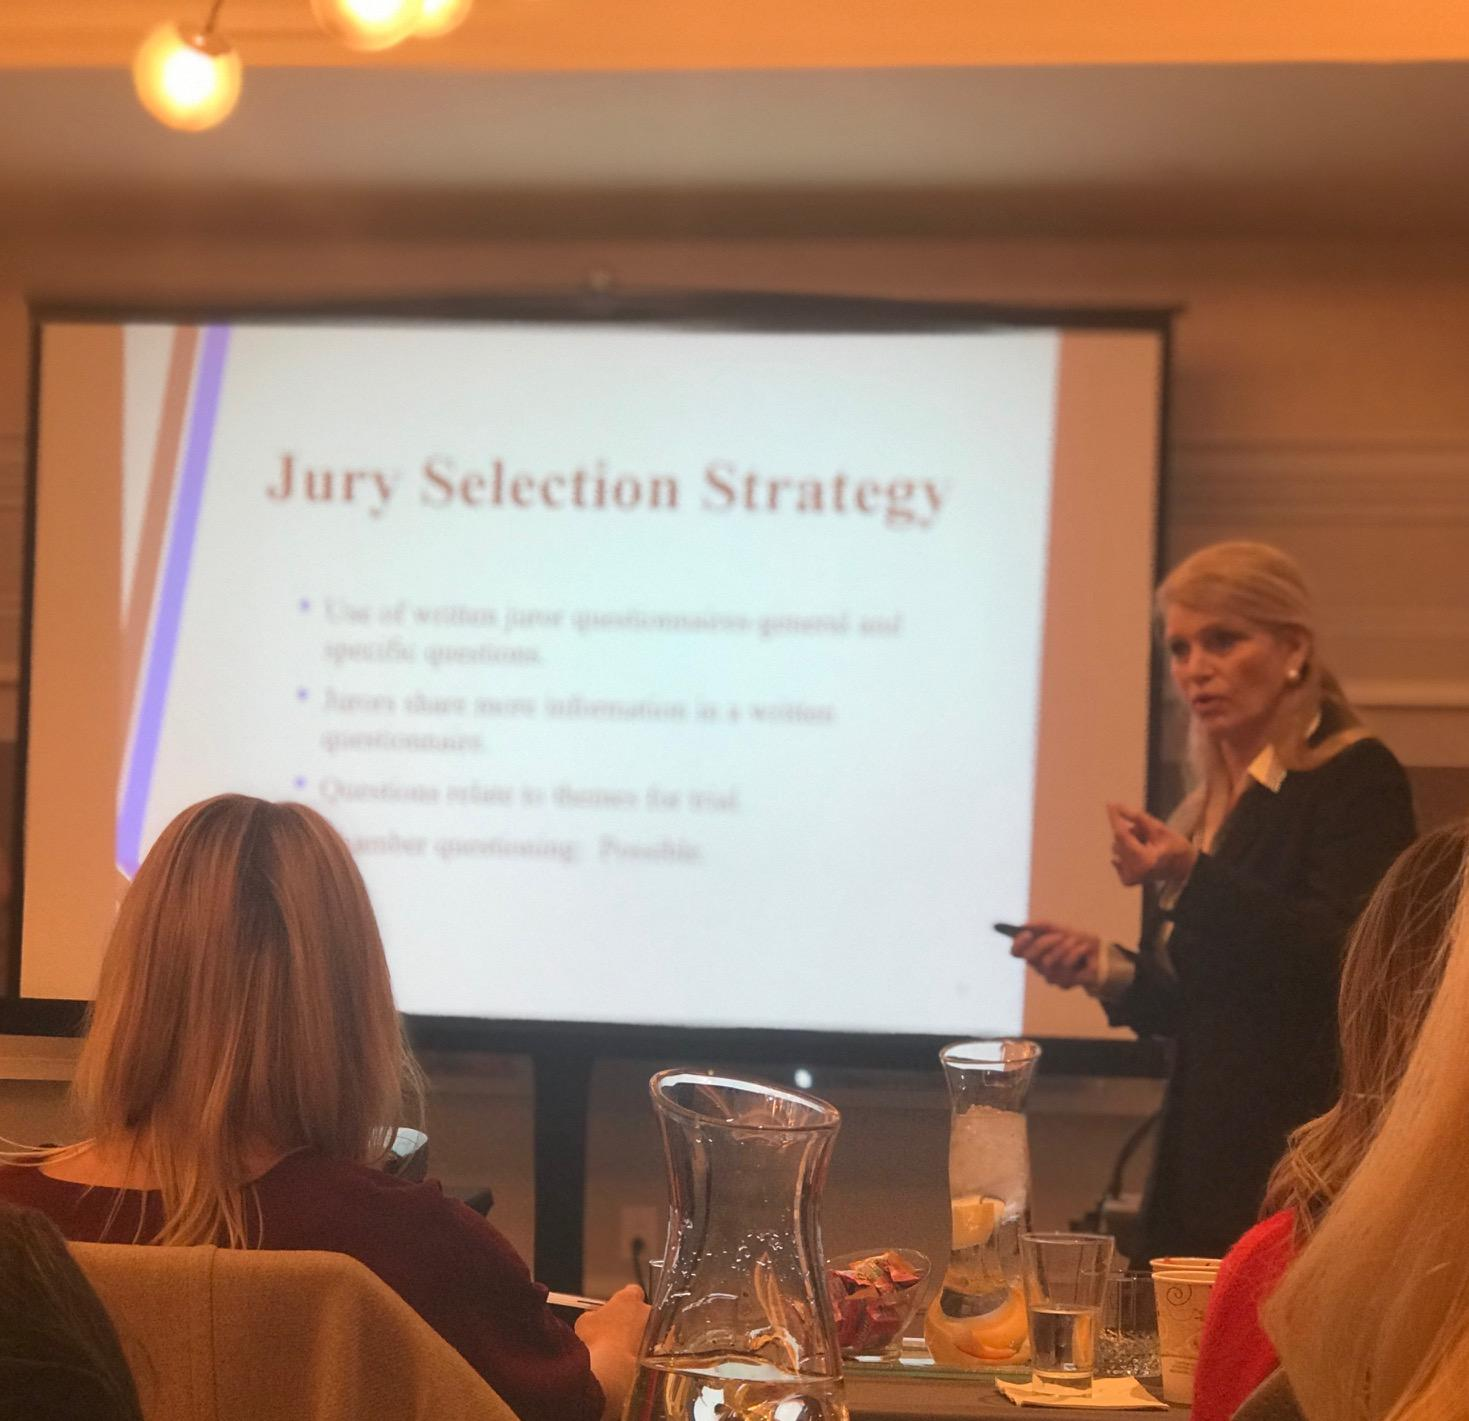 Mona Lisa Wallace Speaks on How to Optimize Jury Verdict For Client